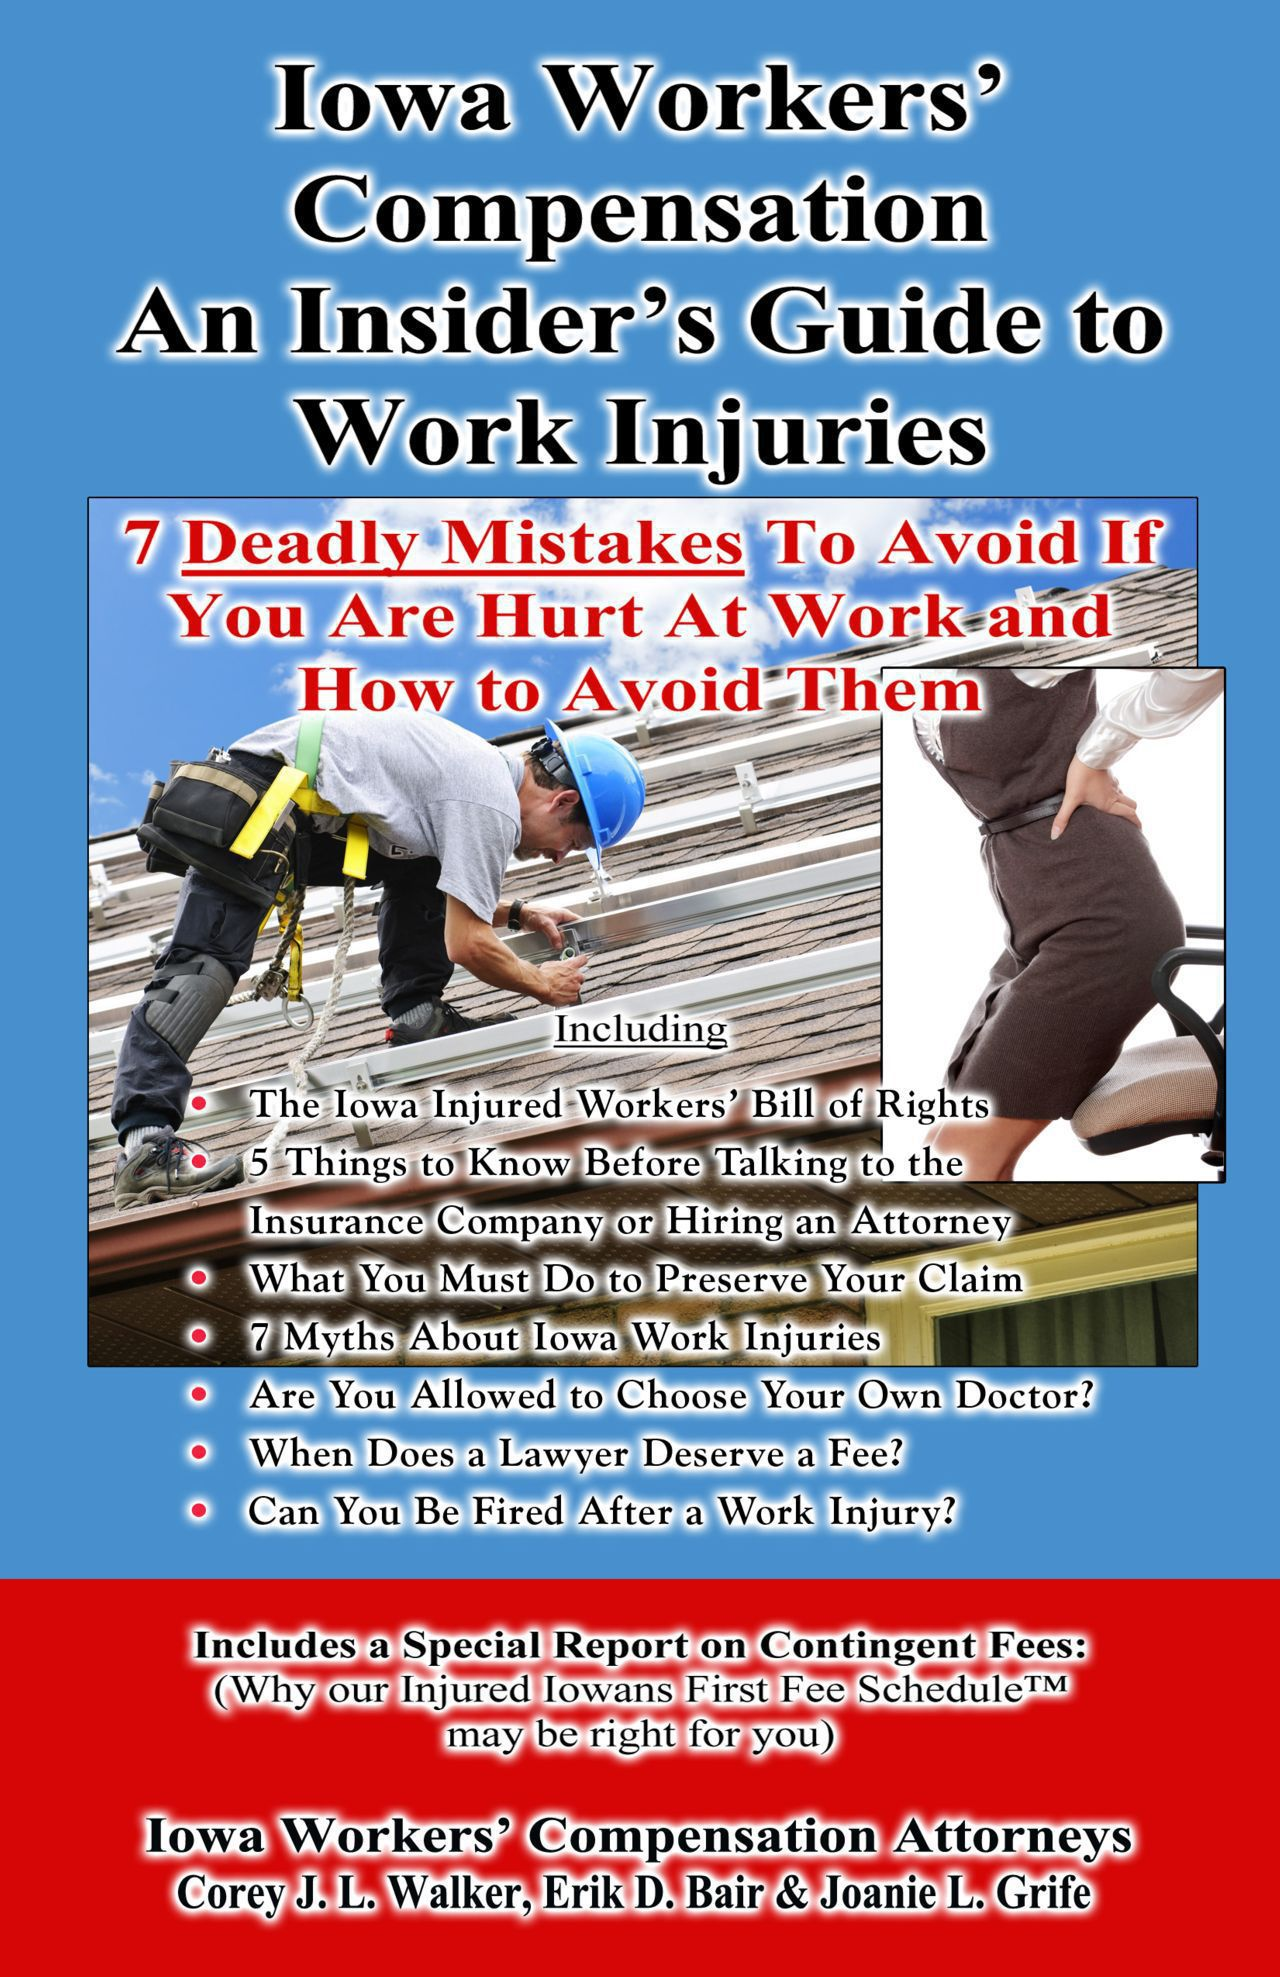 Iowa Workers' Compensation Guide